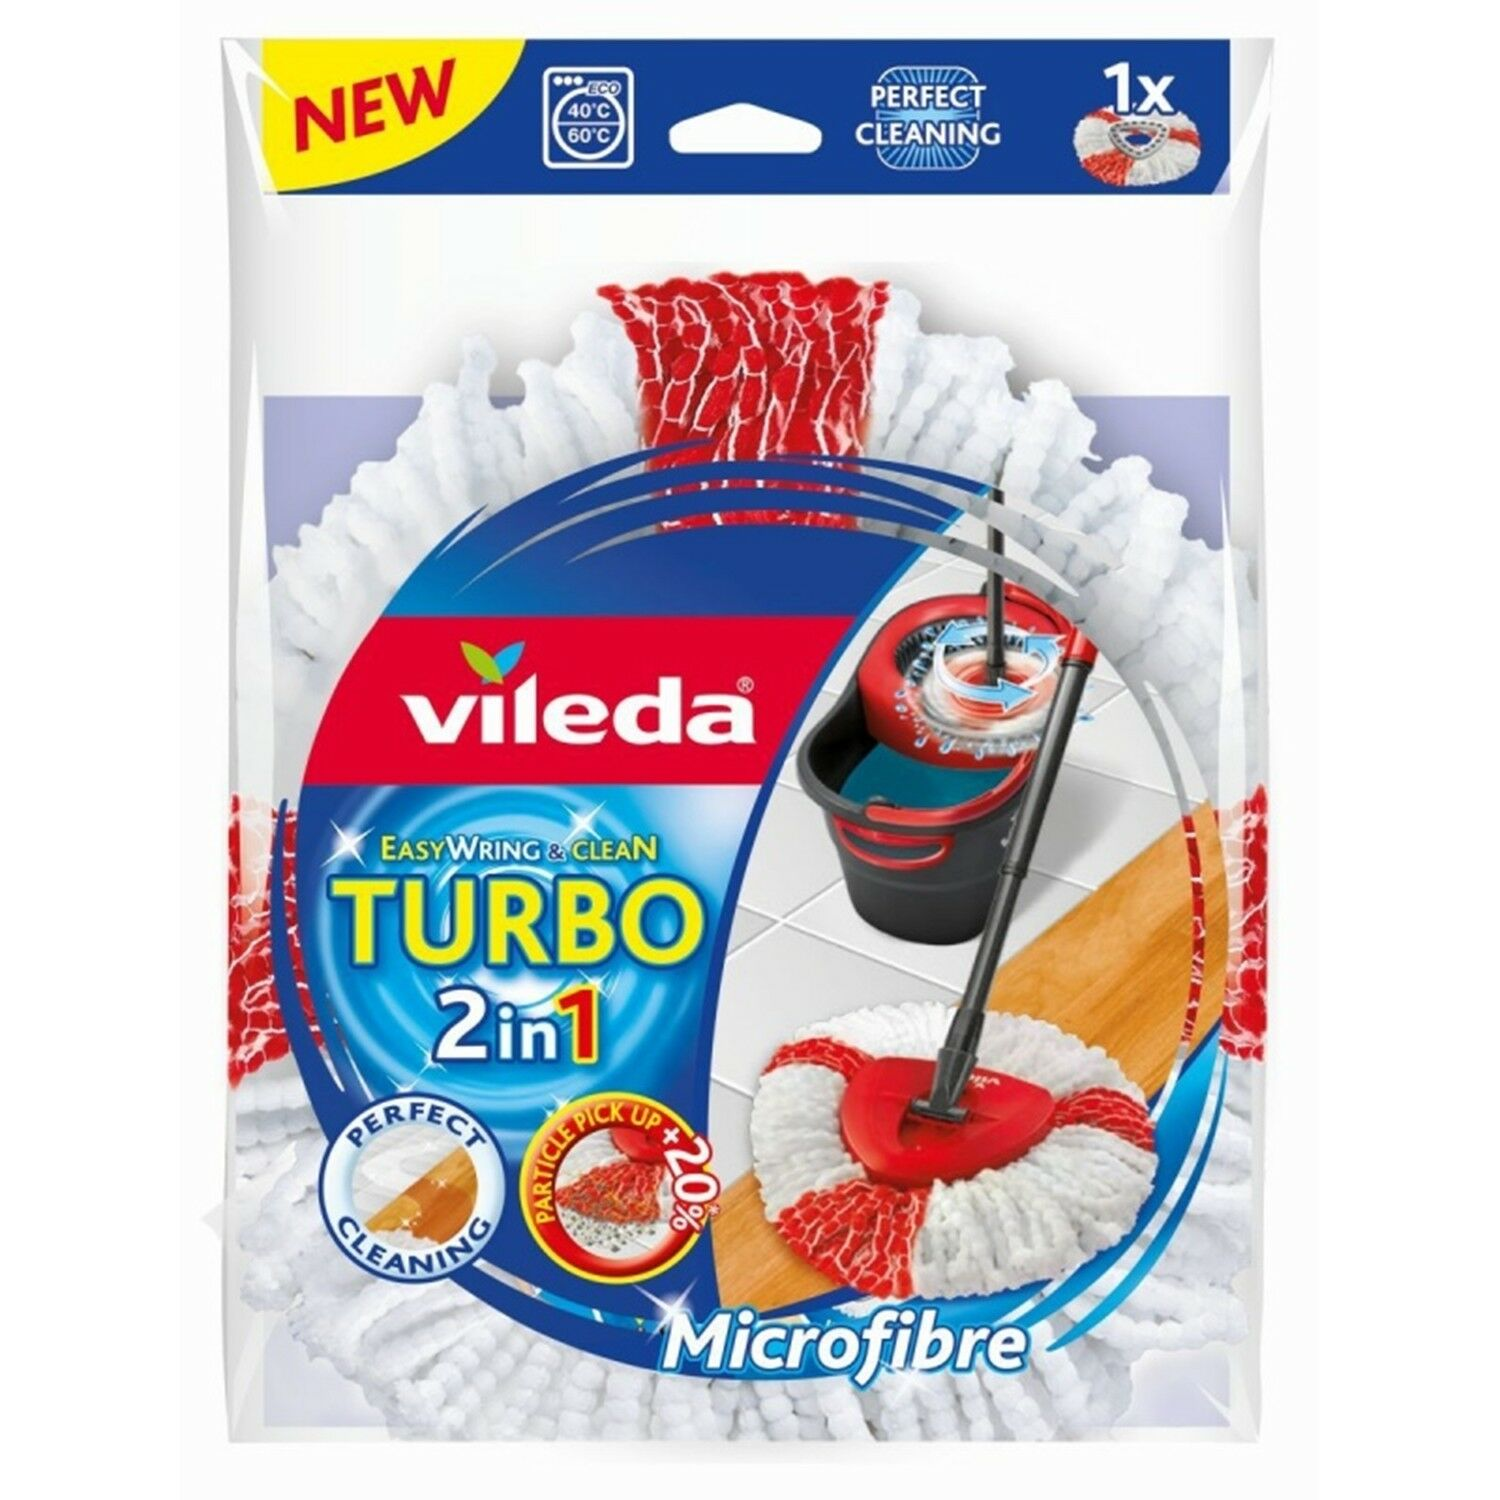 Vileda Easywring Clean Turbo Bodenwischer Microfibre Easy Wring